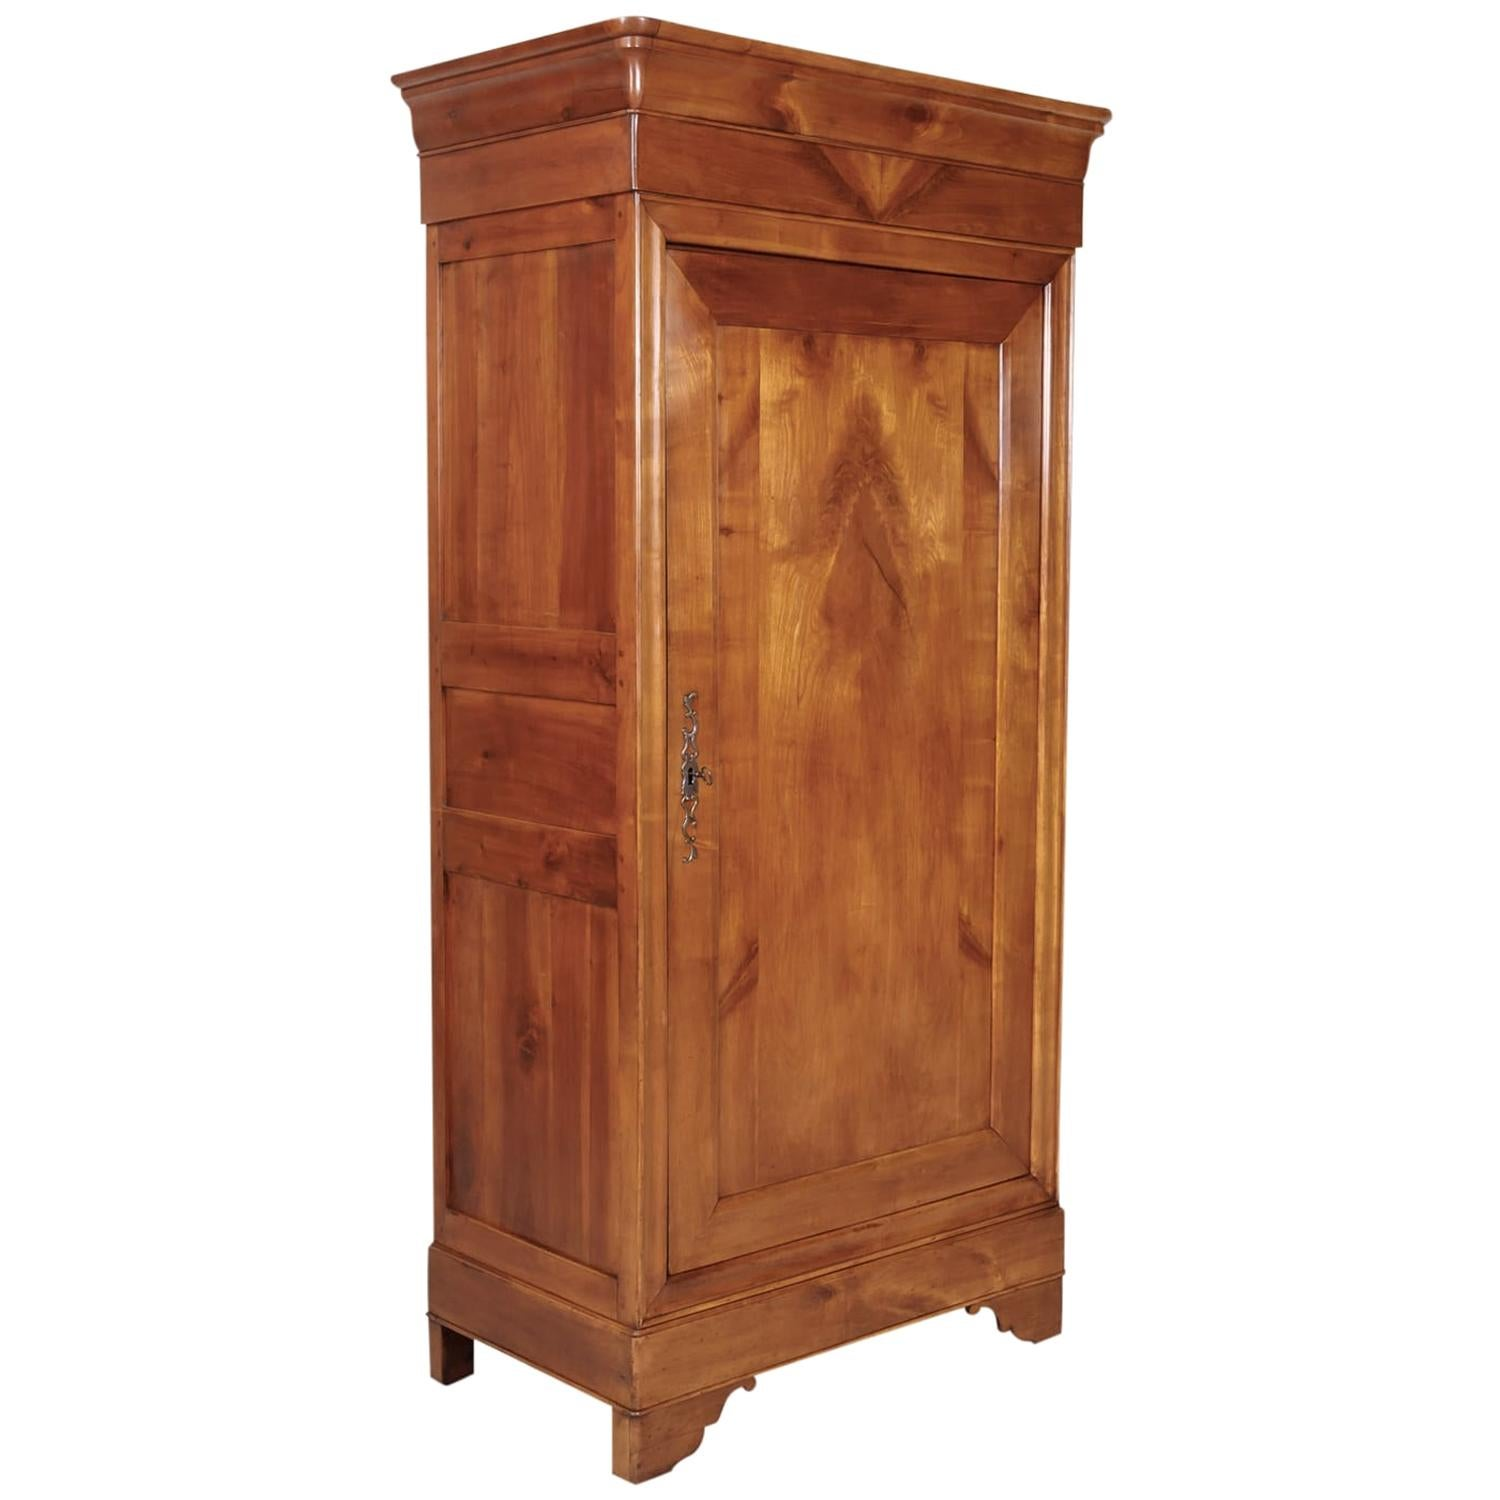 19th Century French Louis Philippe Style Solid Cherry Bonnetiere